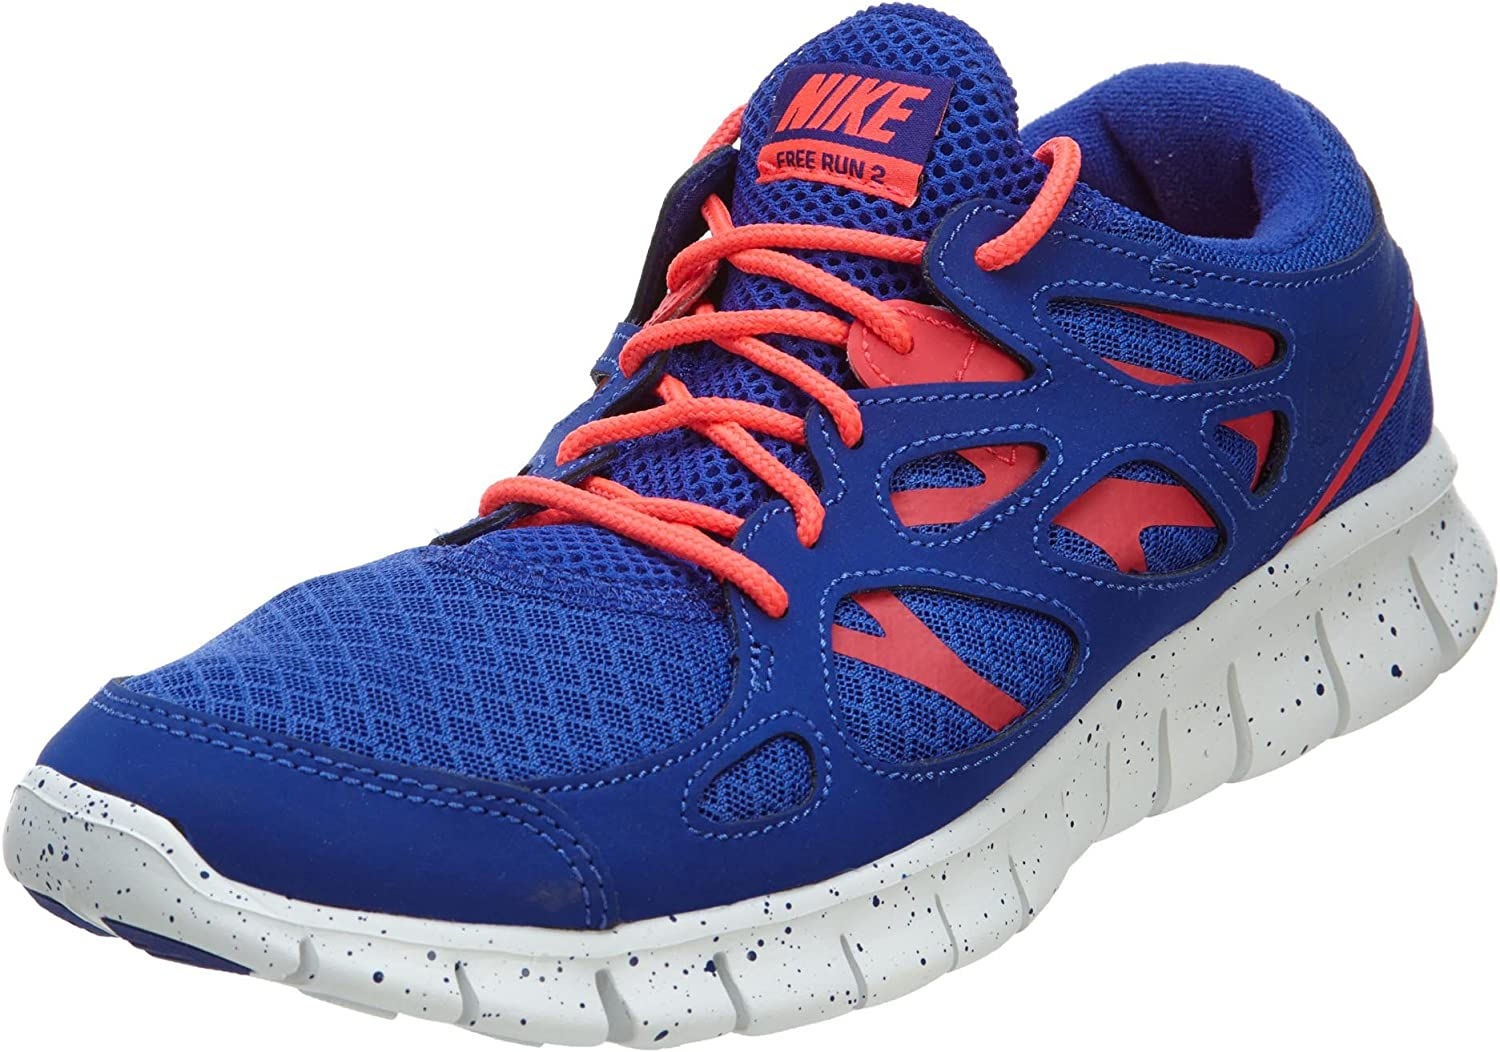 Mujer siesta Discurso  Amazon.com | Nike Mens Free Run 2 EXT Breathable Workout Running Shoes Blue  9 Medium (D) | Road Running